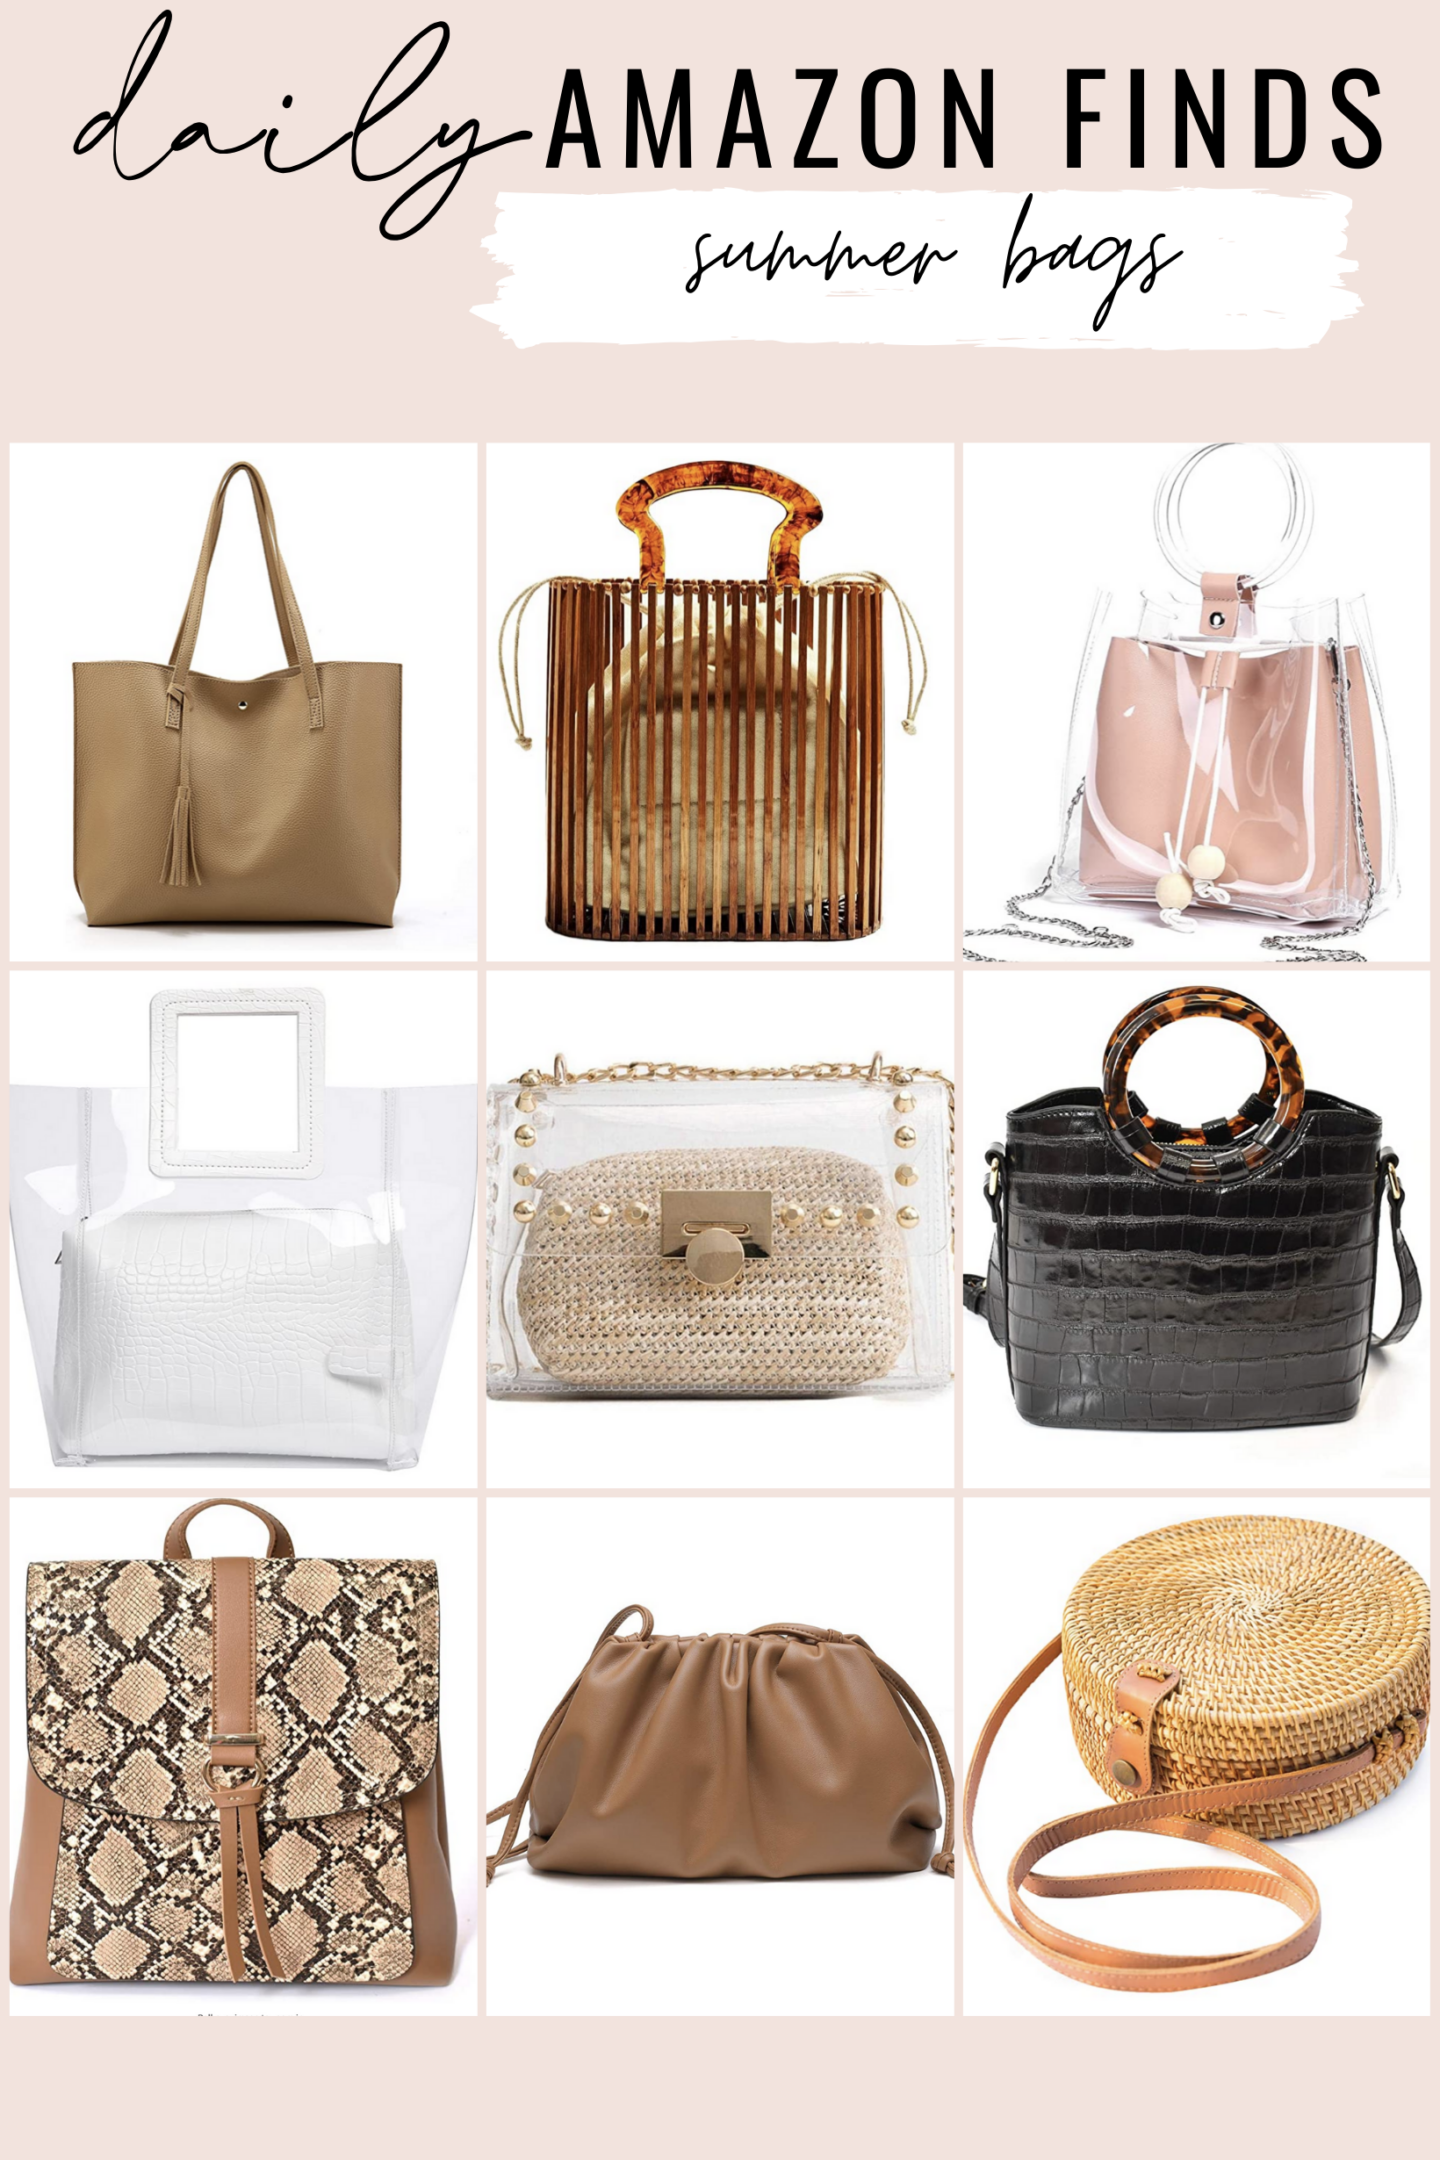 Cute Bags from Amazon